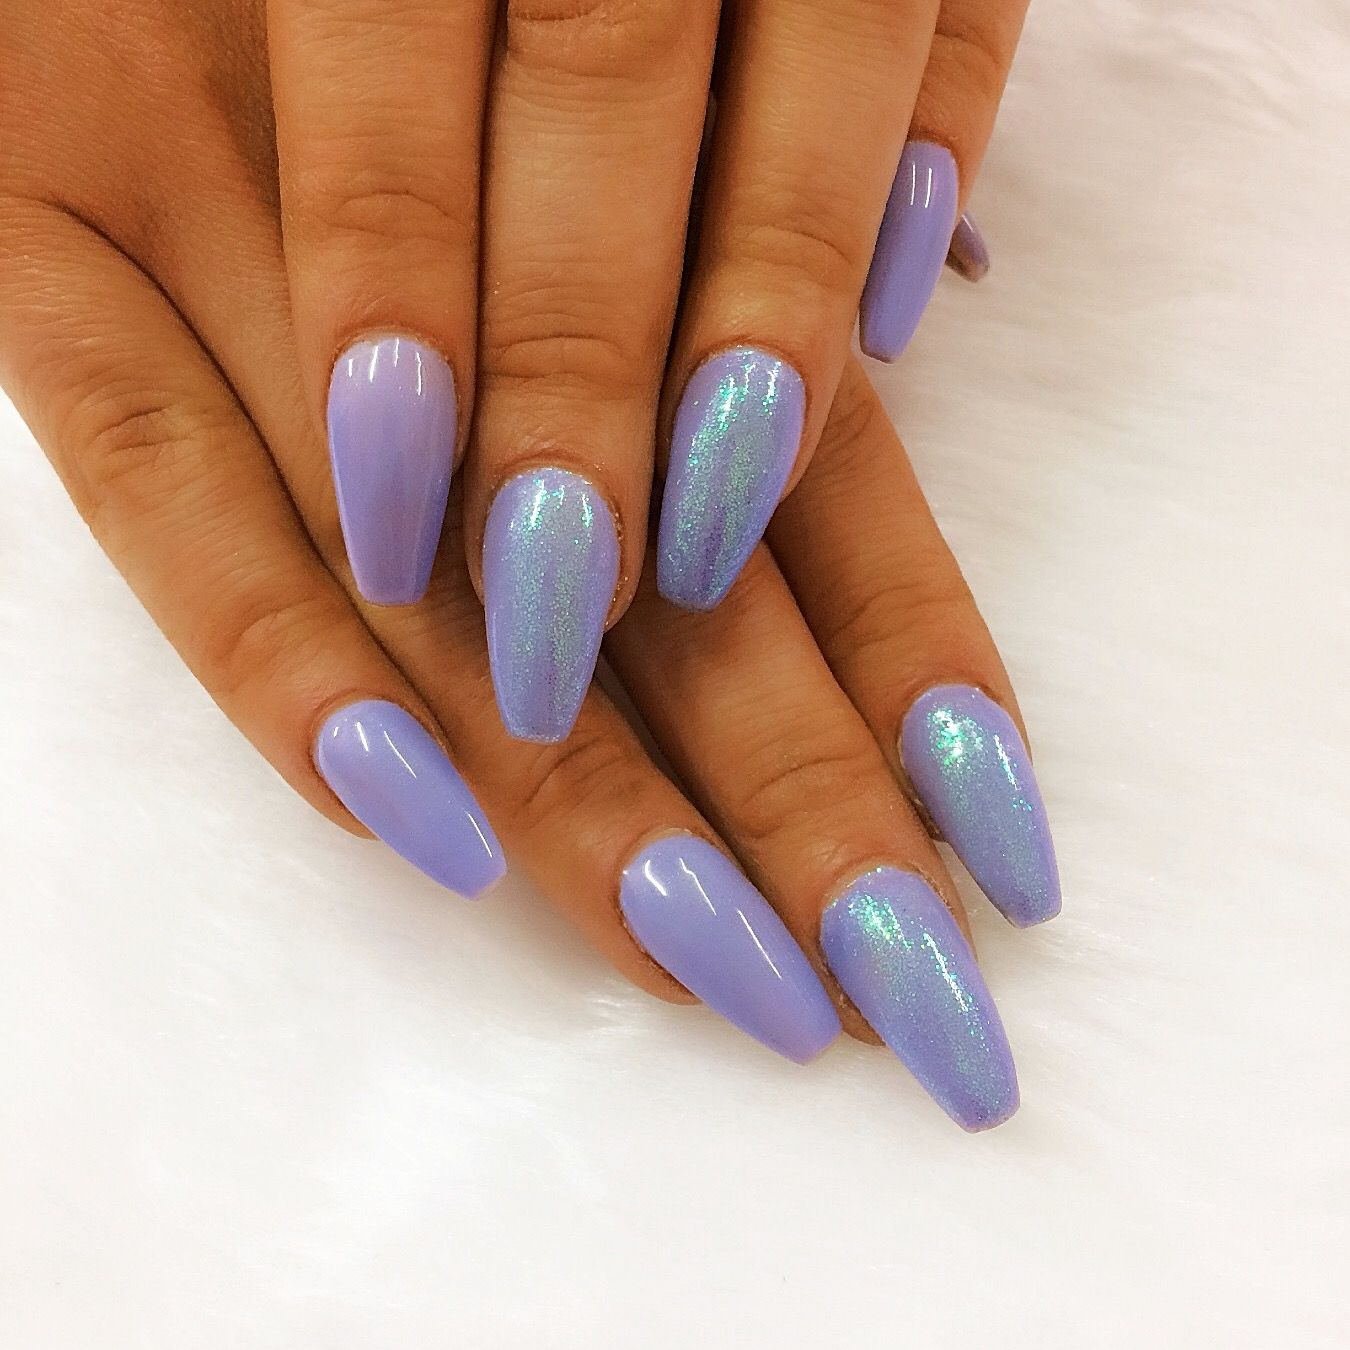 Periwinkle coffin shaped acrylic nails with mermaid glitter accents ...